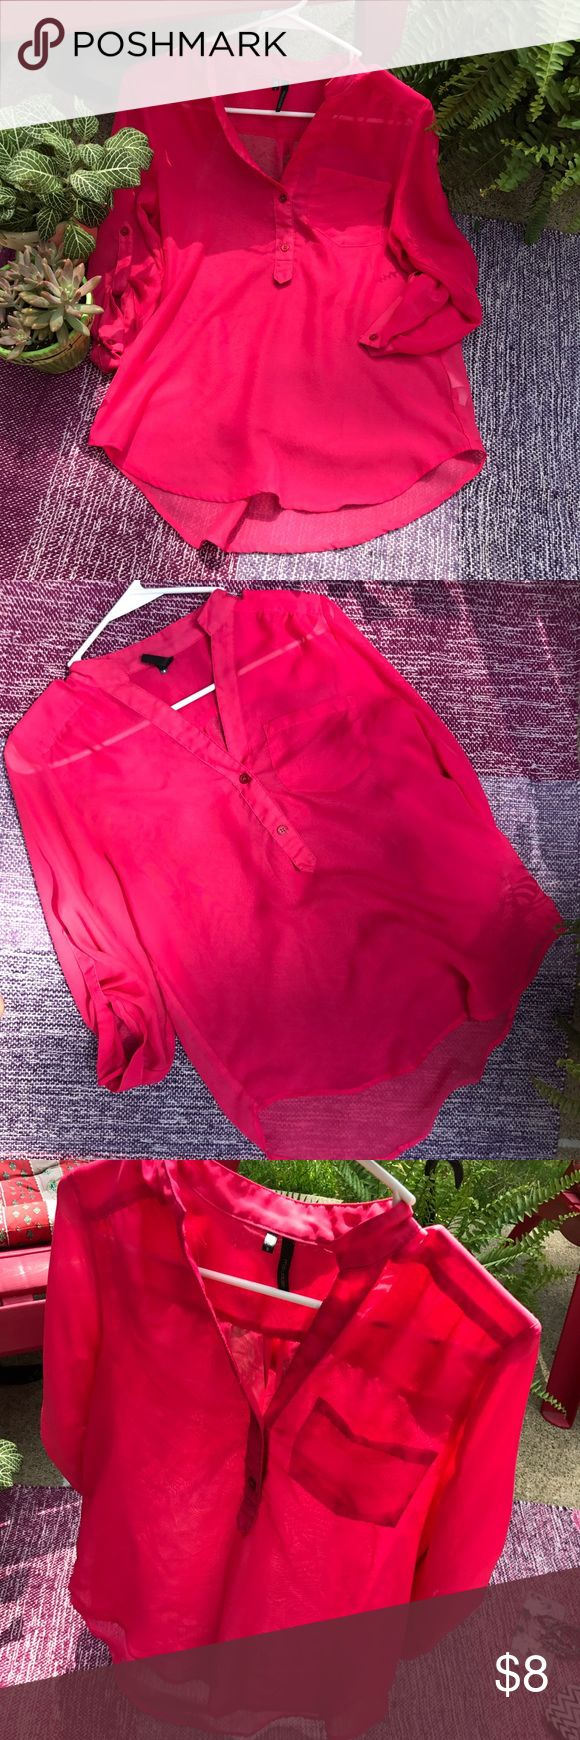 Hot pink top Sheer hot pink top, perfect for work and anything business casual. 💖💖💖 sleeves are 3/4. Maurices Tops Blouses